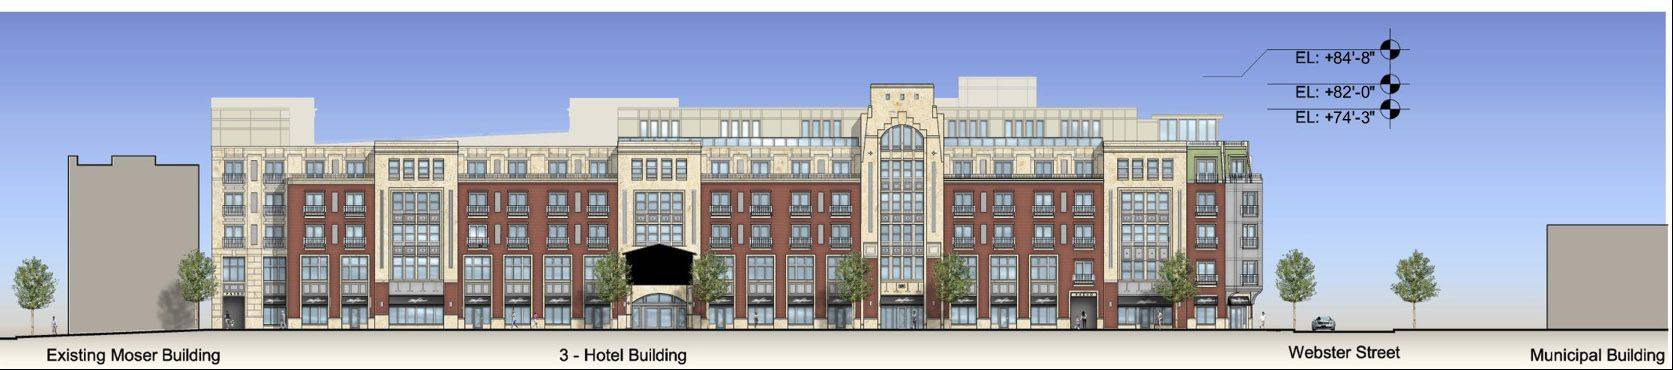 Would-be Naperville council members weigh in on Water Street financing